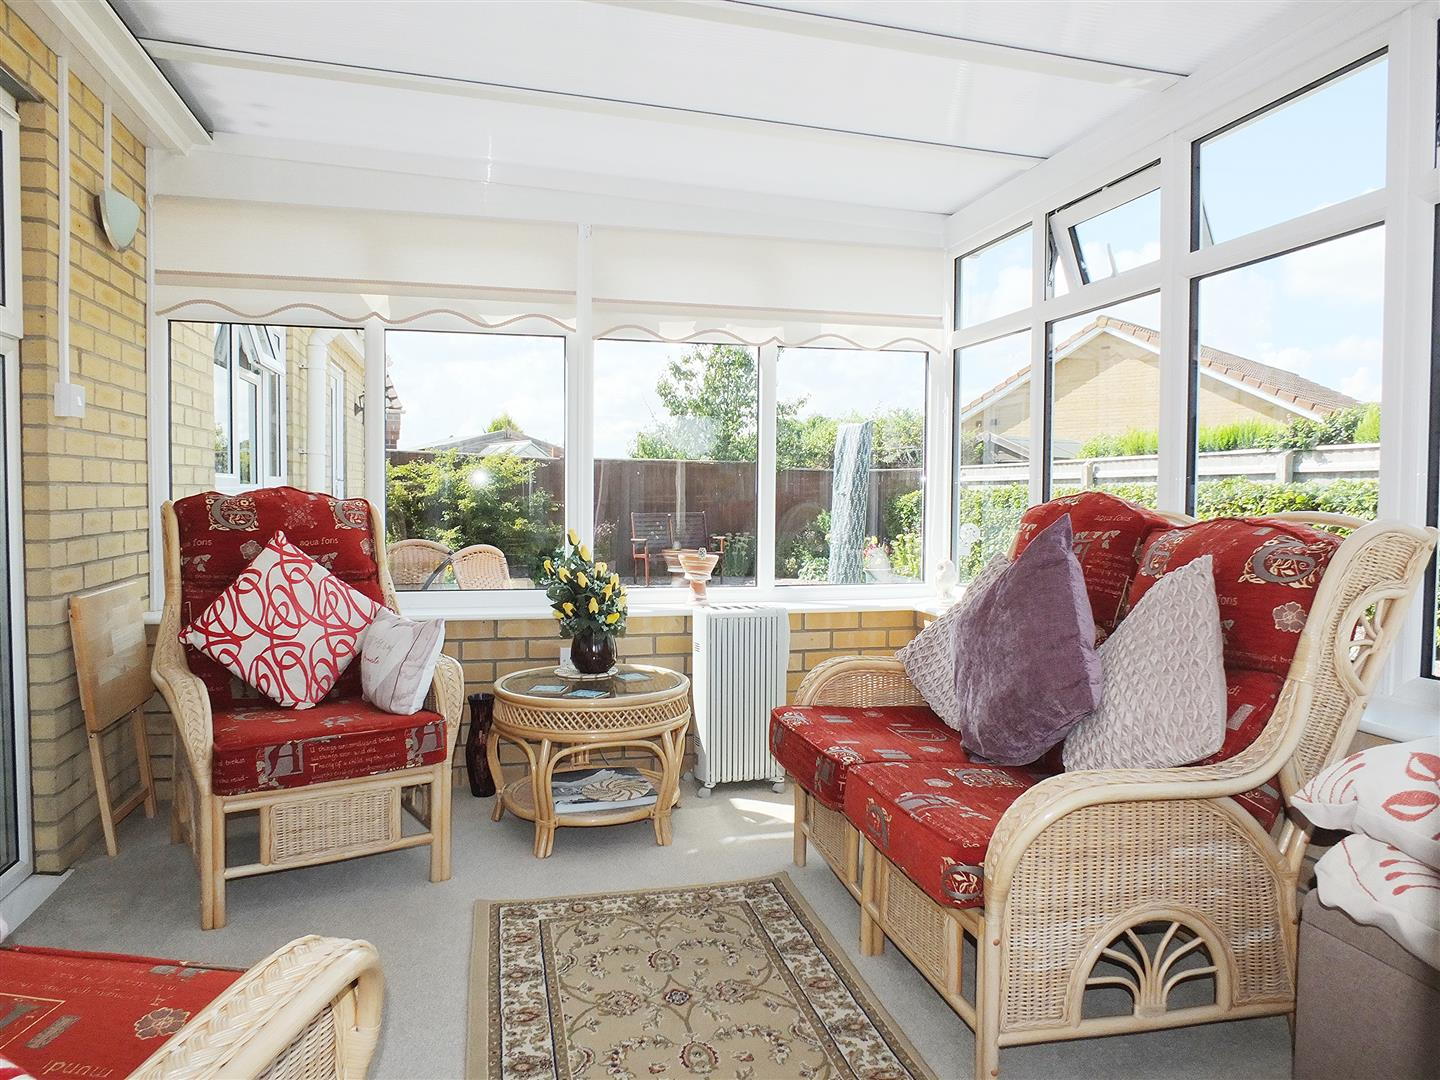 3 bed detached bungalow for sale in Long Sutton Spalding, PE12 9FT 6